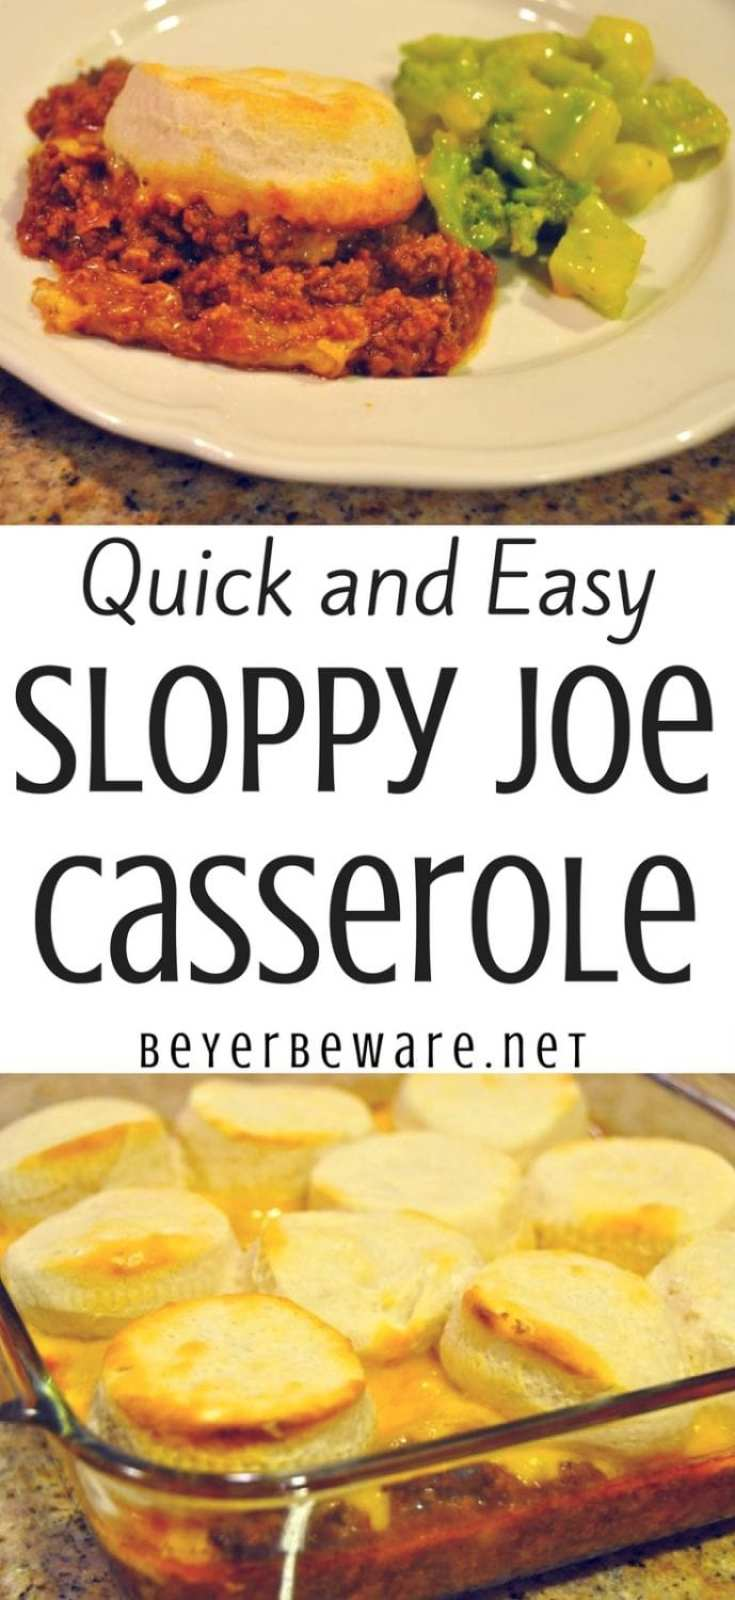 Quick and easy Sloppy Joe Casserole is the perfect weeknight meal recipe when you have leftover sloppy joe in the fridge or freezer it is 3 simple ingredients.